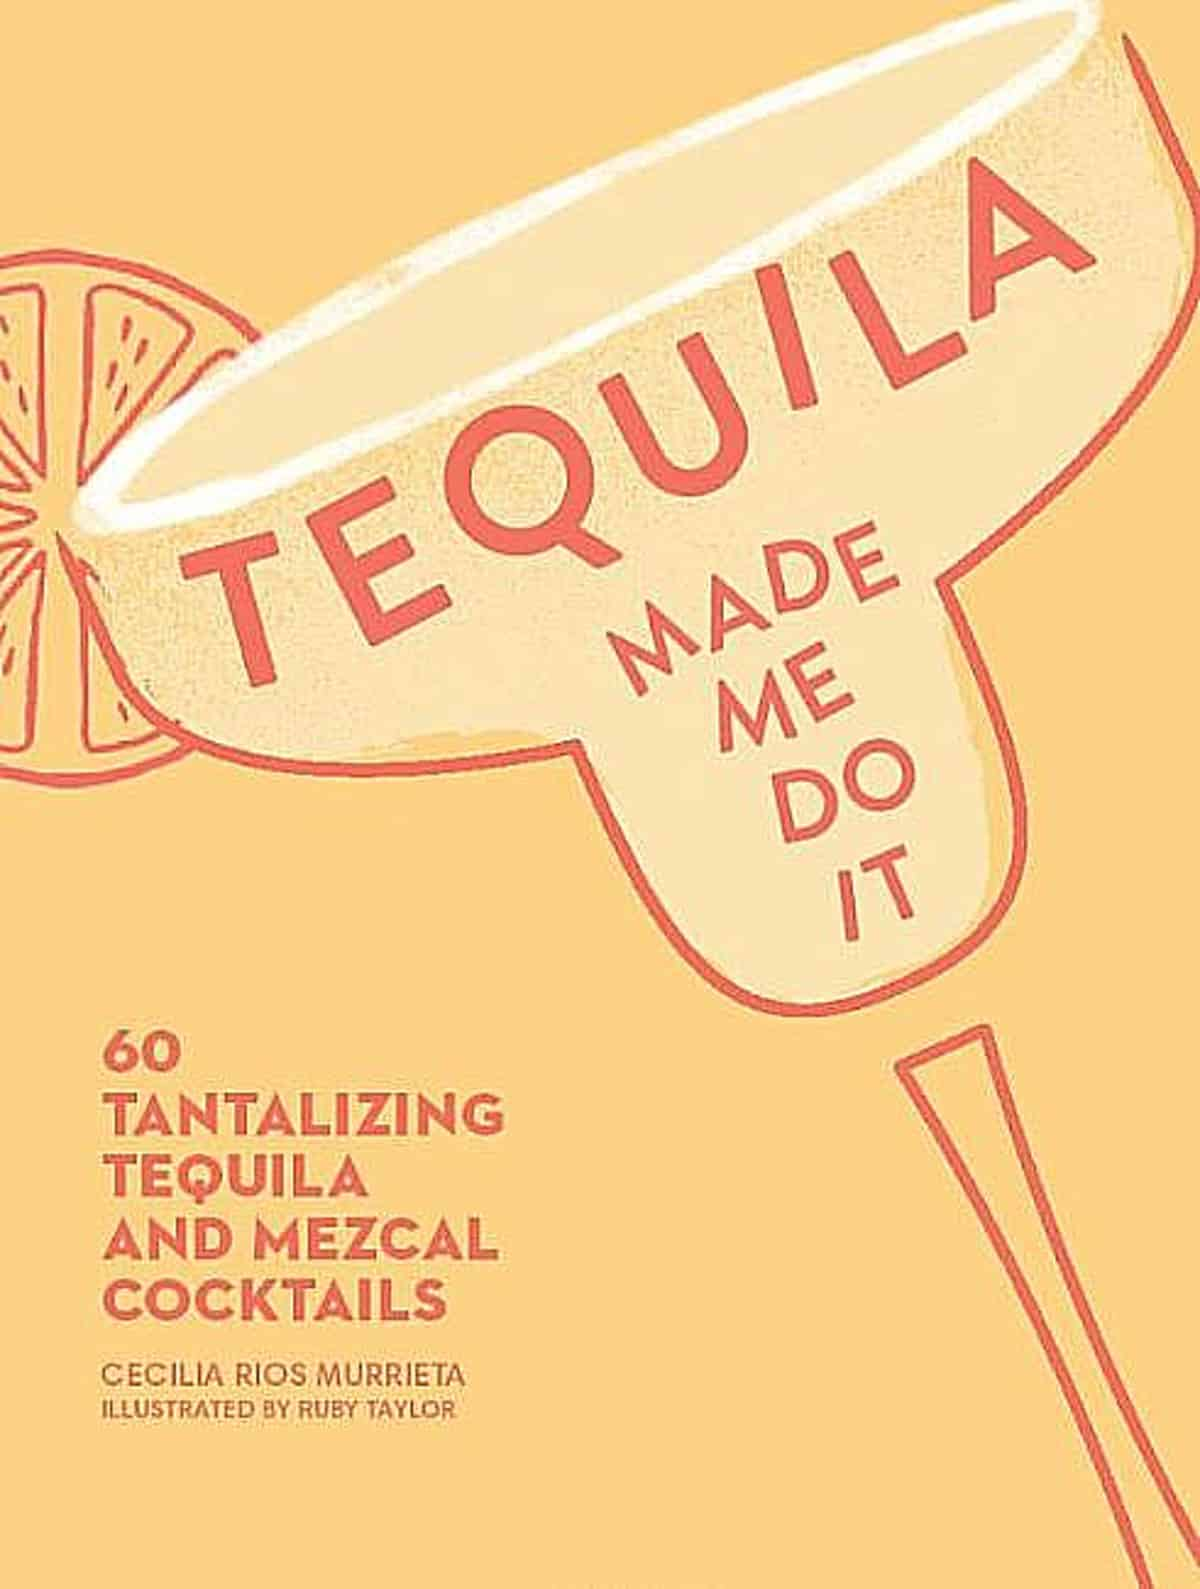 Just a fun book to read written by someone very passionate about the spirit and has fantastic tequila recipes too. Pic credit: Andrews McMeel Publishing.